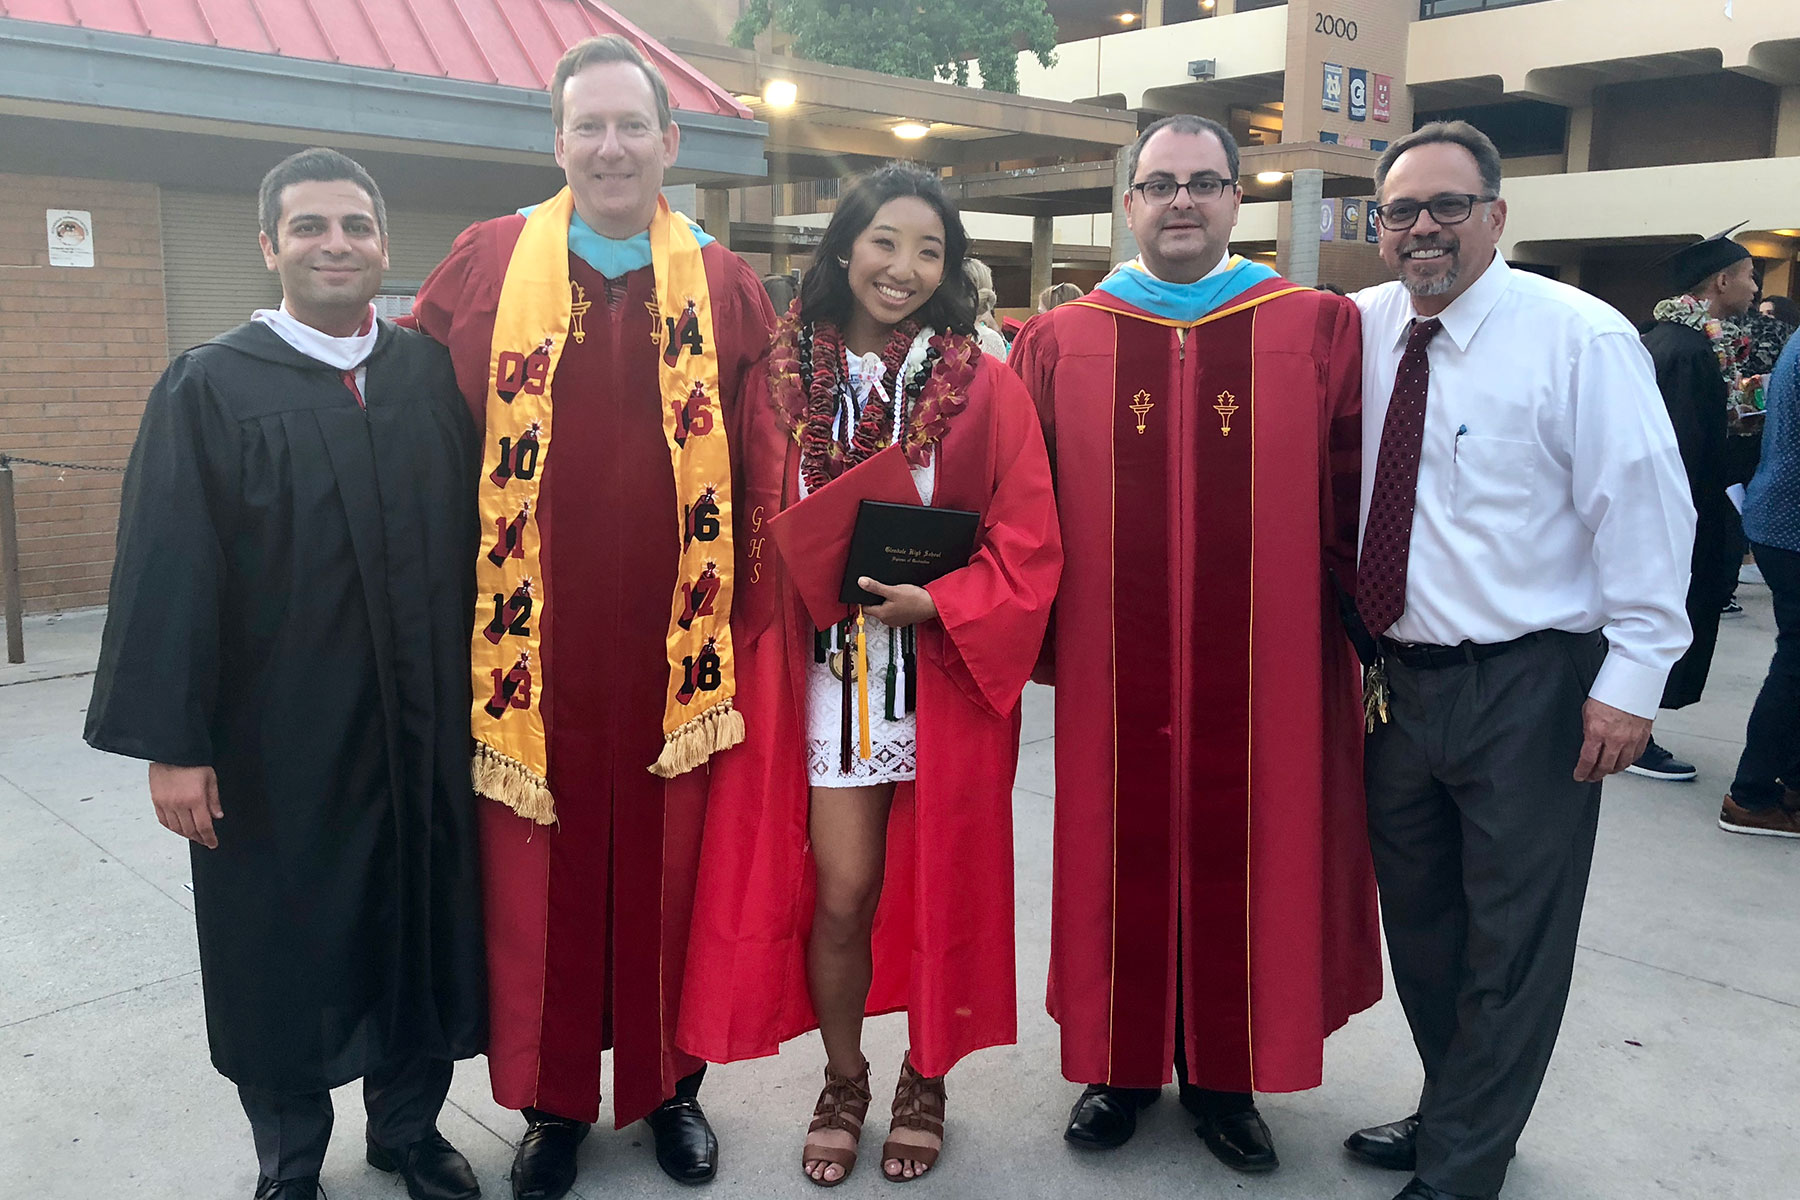 Glendale High School Graduation Ceremony June 2018